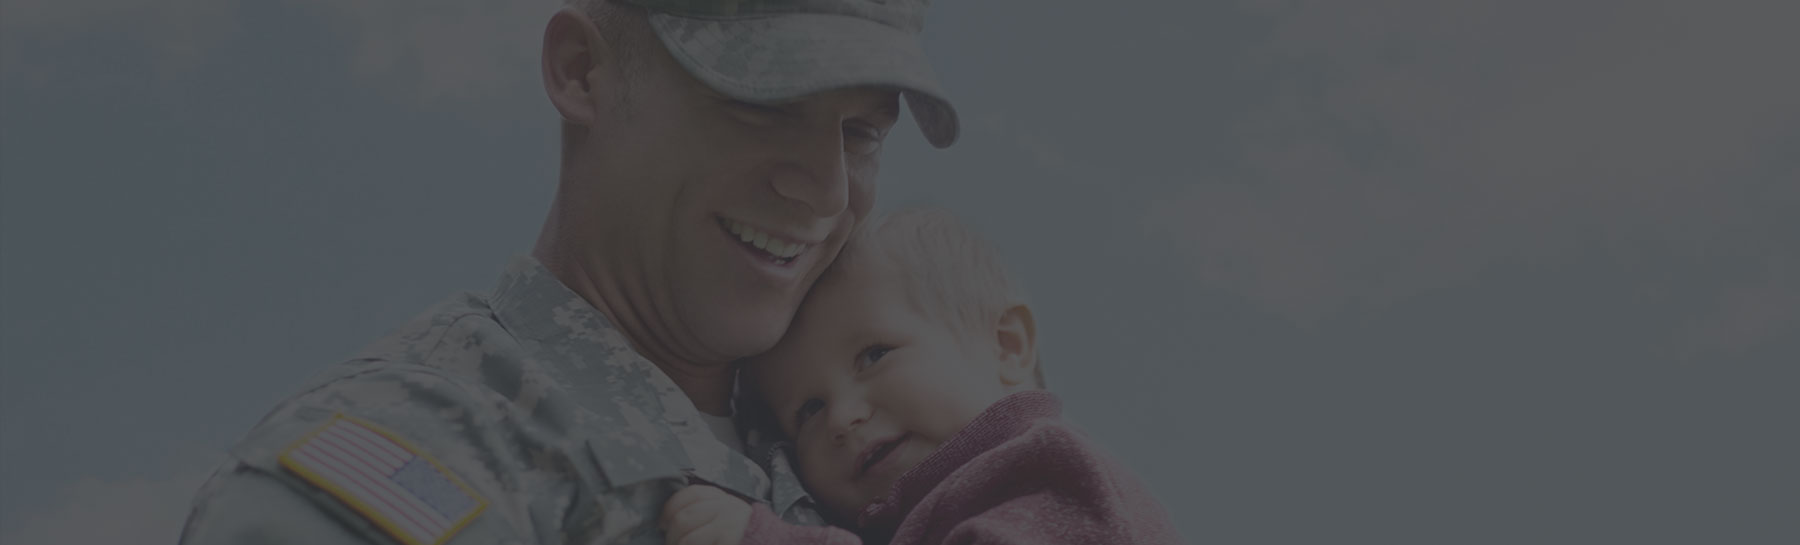 Best Car Insurance Discounts For Military Personnel The Zebra